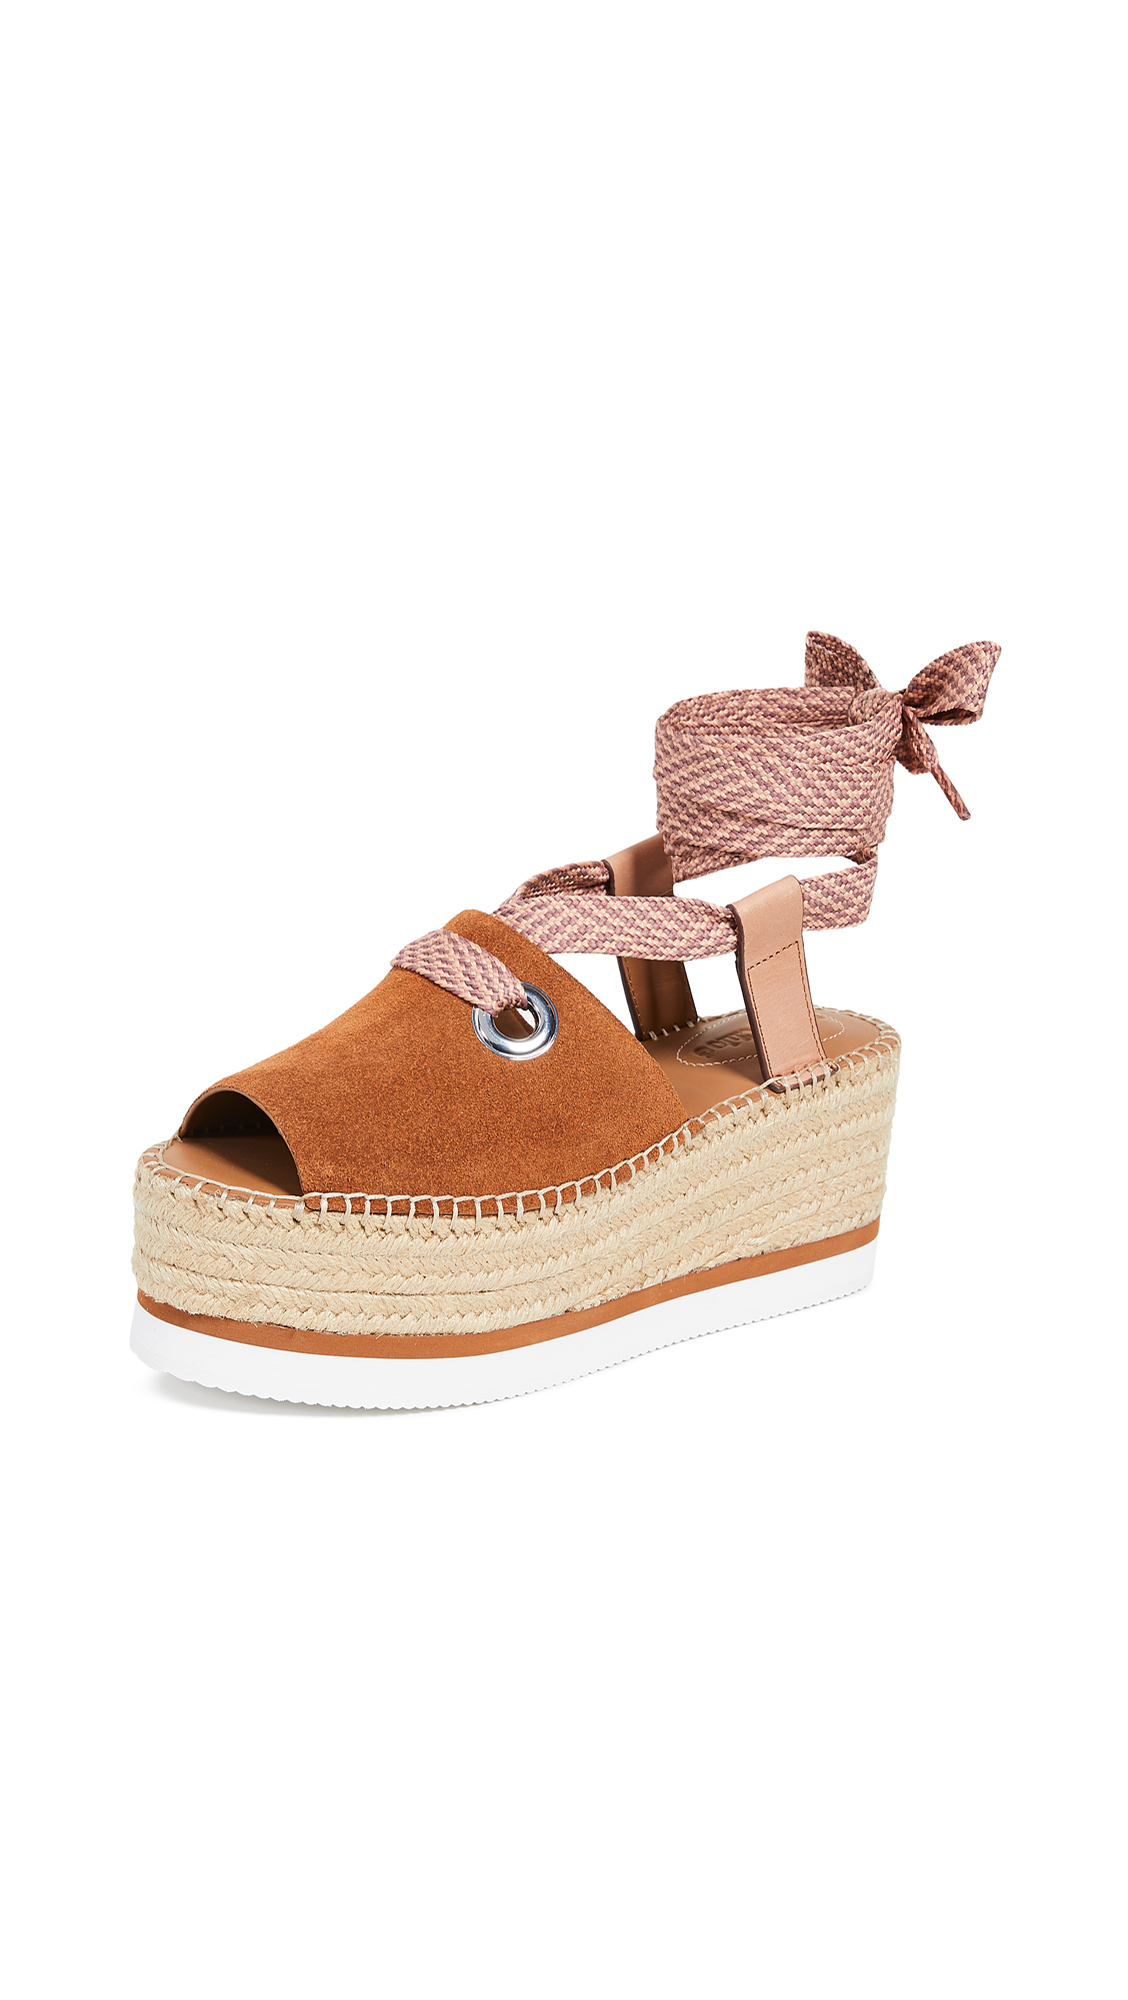 See by Chloe Glyn Amber Lace Up Espadrilles - Tan